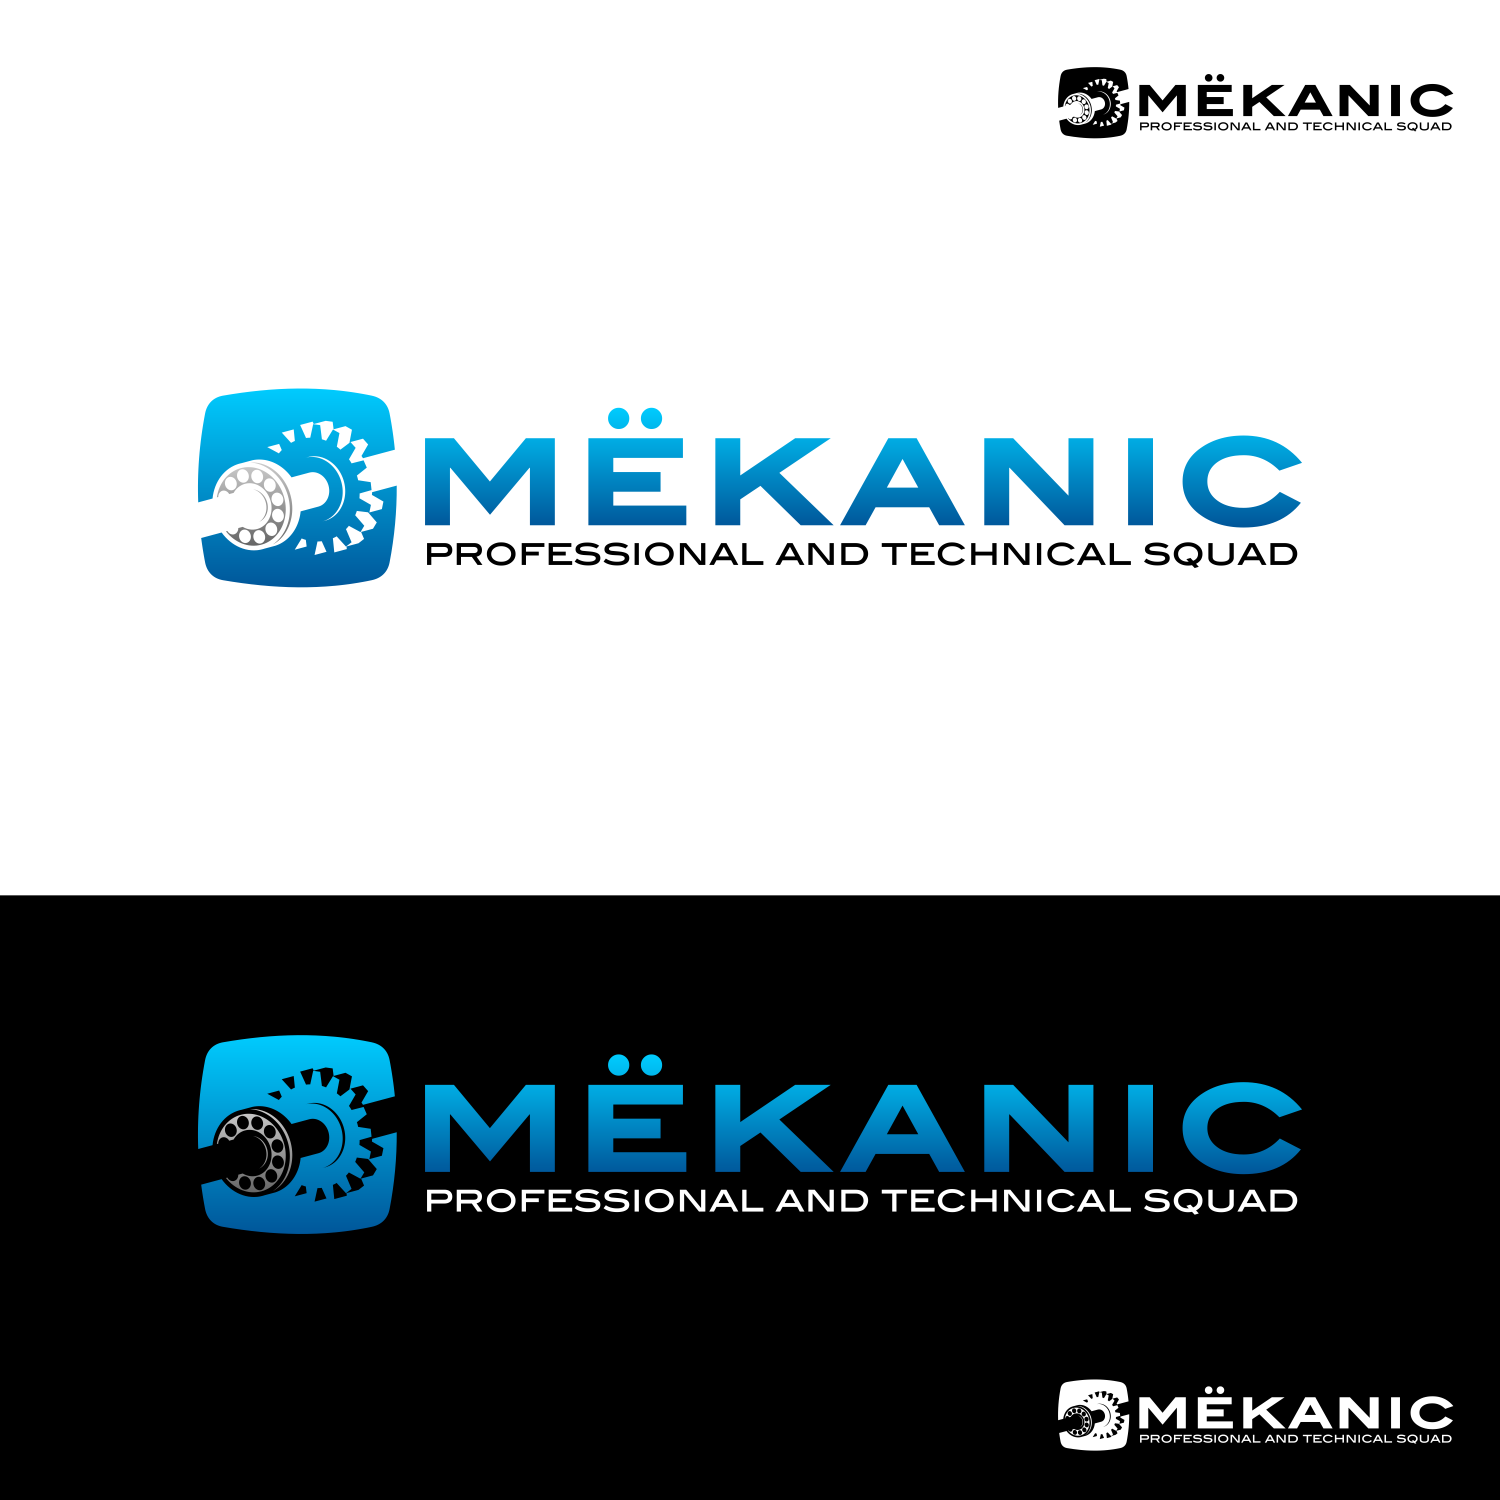 Logo Design by martinz - Entry No. 28 in the Logo Design Contest Creative Logo Design for MËKANIC - Professional and technical squad.